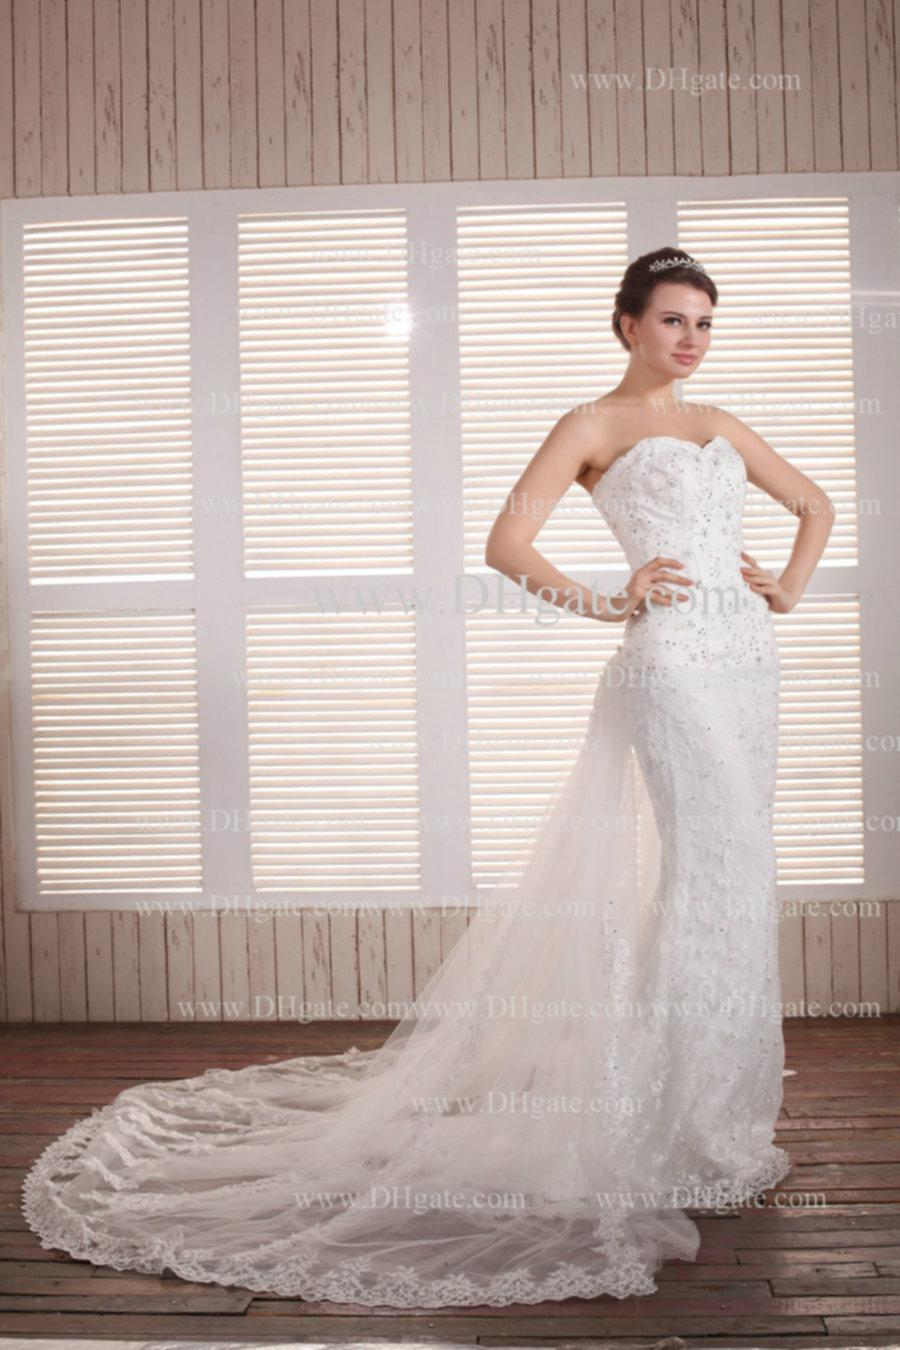 Straight Wedding Gowns With Detachable Trains - Expensive Wedding ...